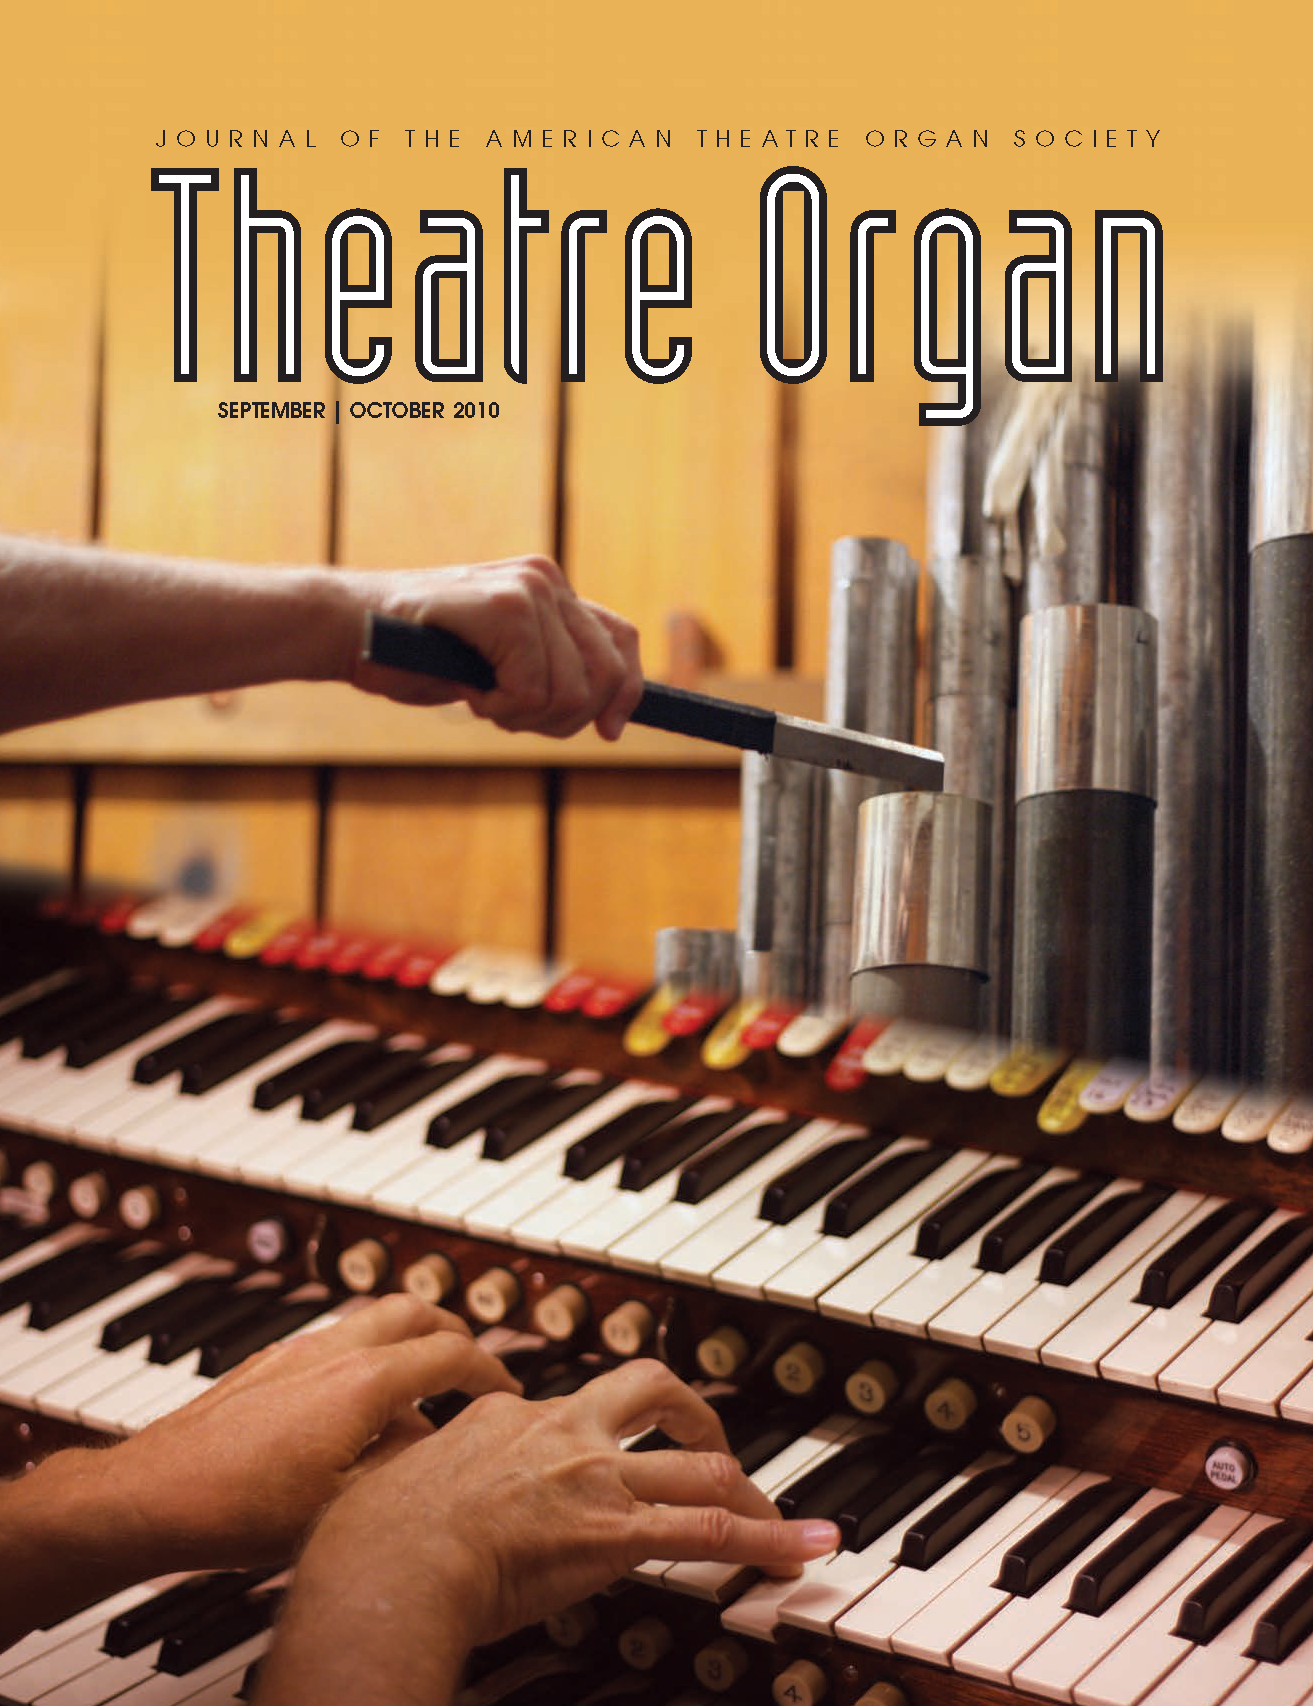 Theatre Organ, September - October 2010, Volume 52, Number 5